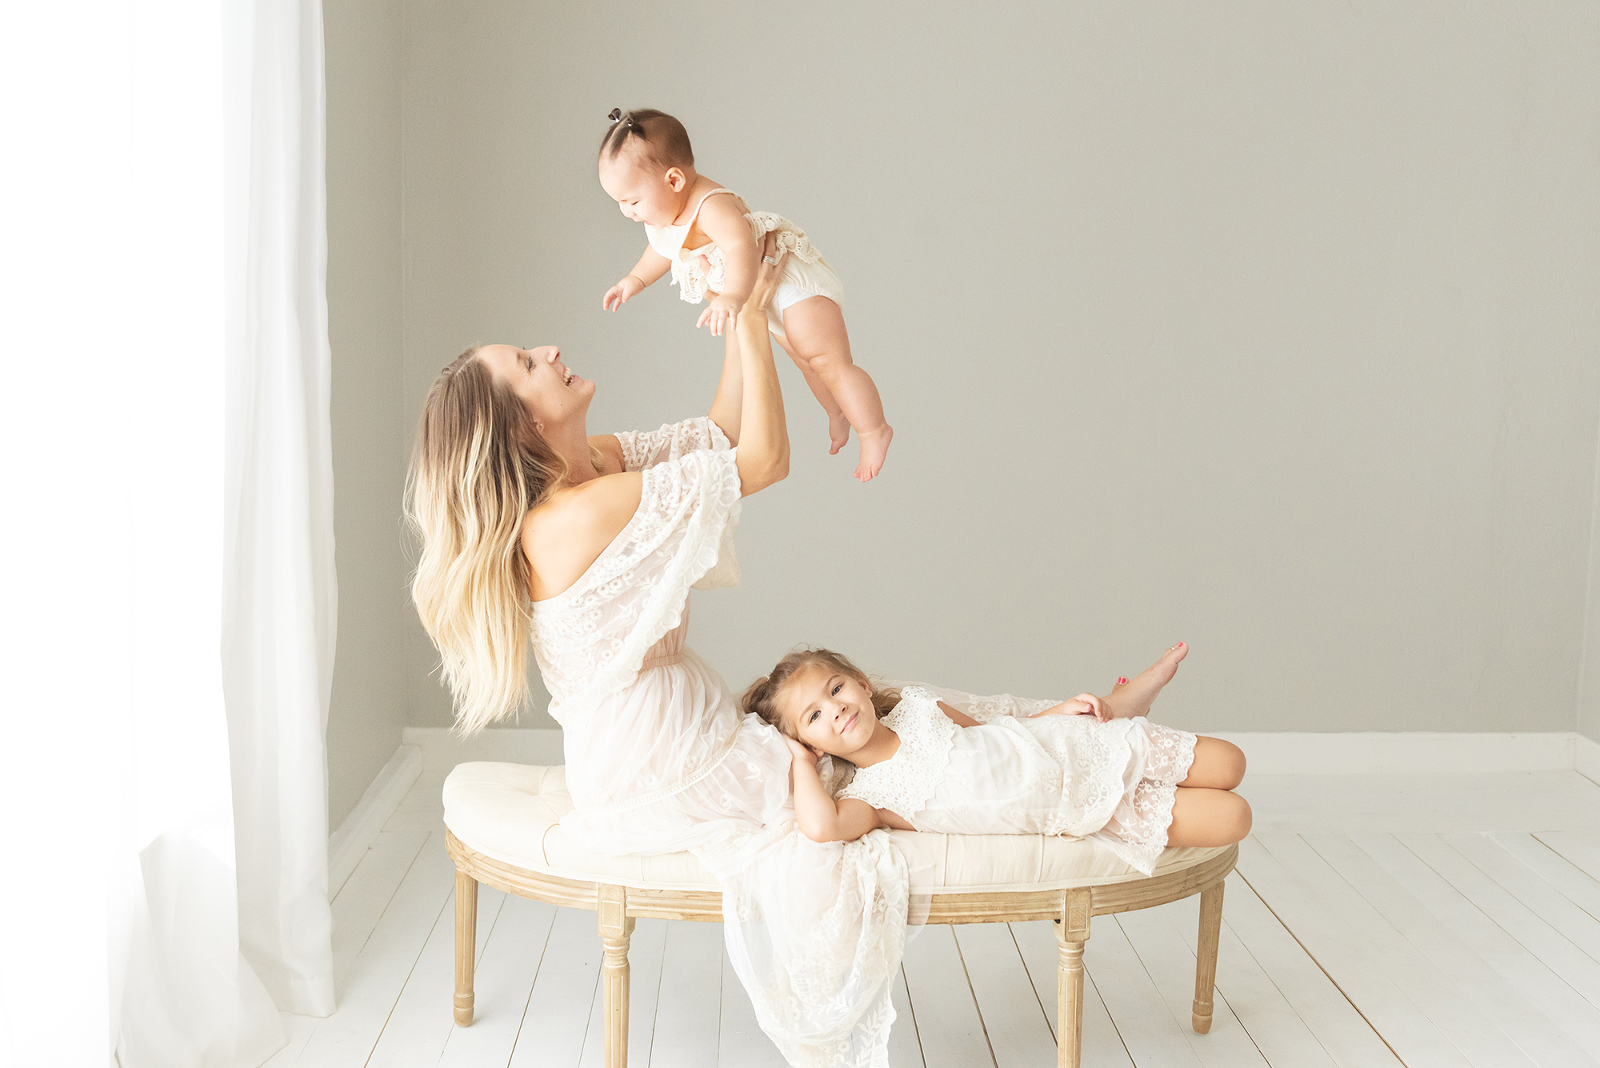 baby photography 6 months mom and sibling | Reaj Roberts Photography